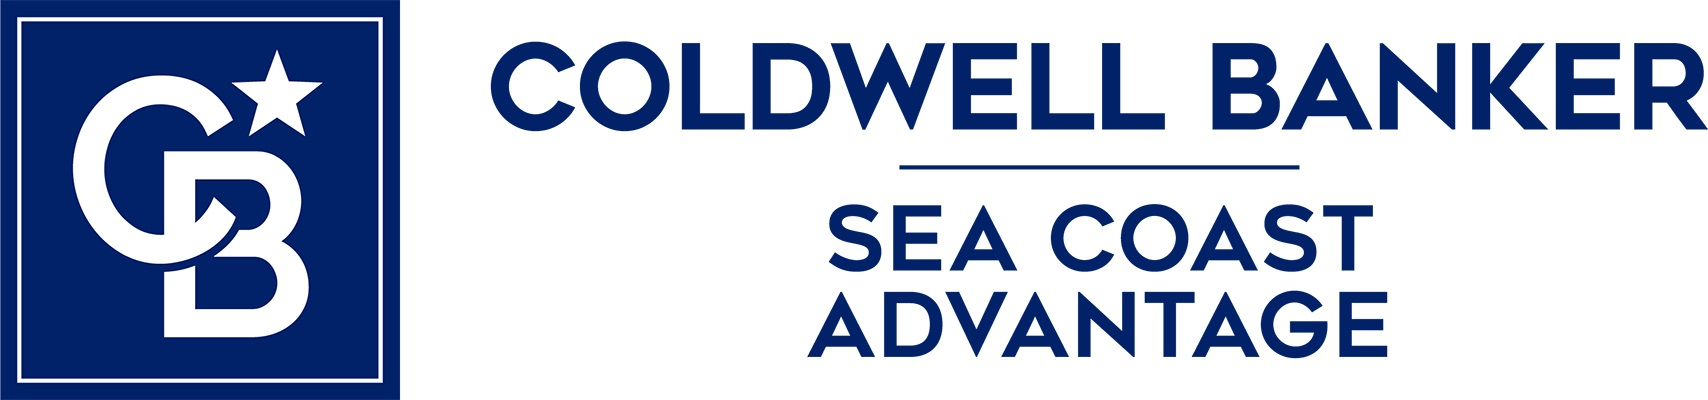 Amanda Whitney - Coldwell Banker Sea Coast Advantage